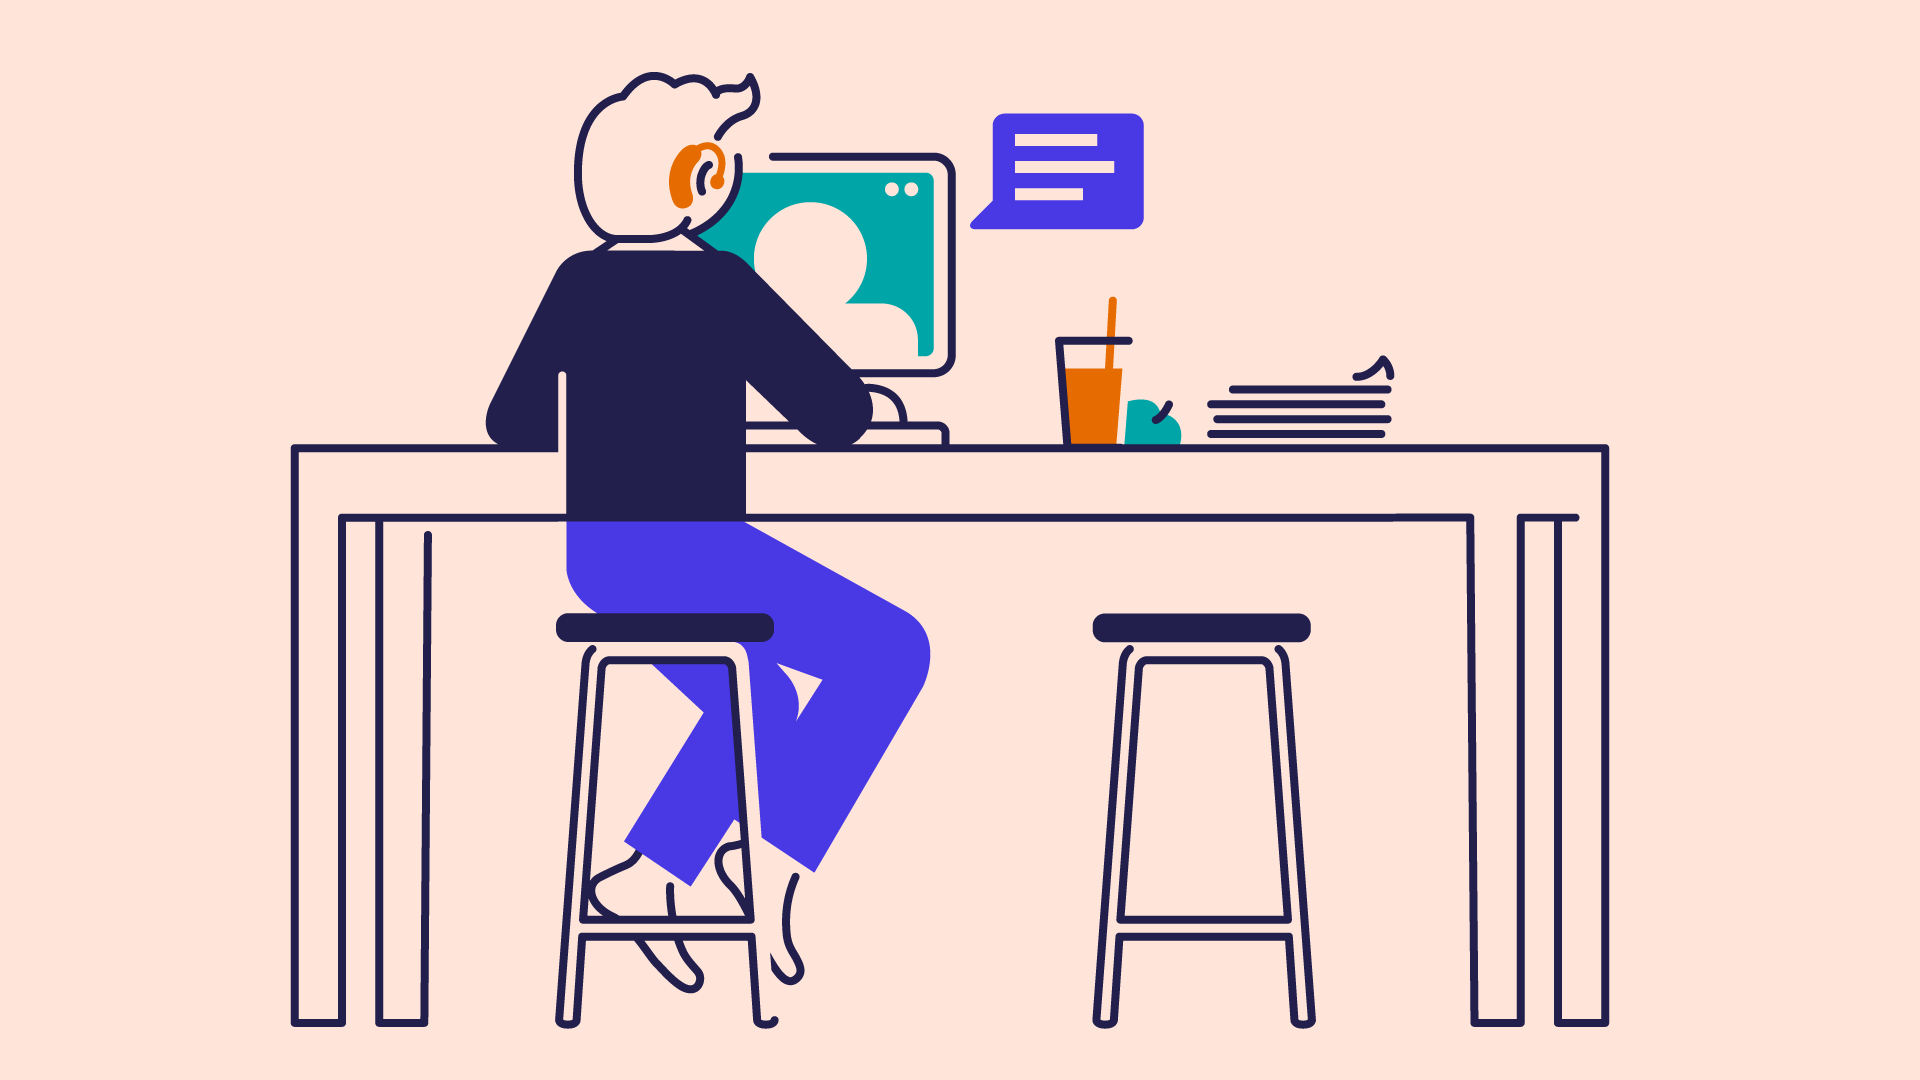 an illustration of a student with a hearing aid sitting at a desk